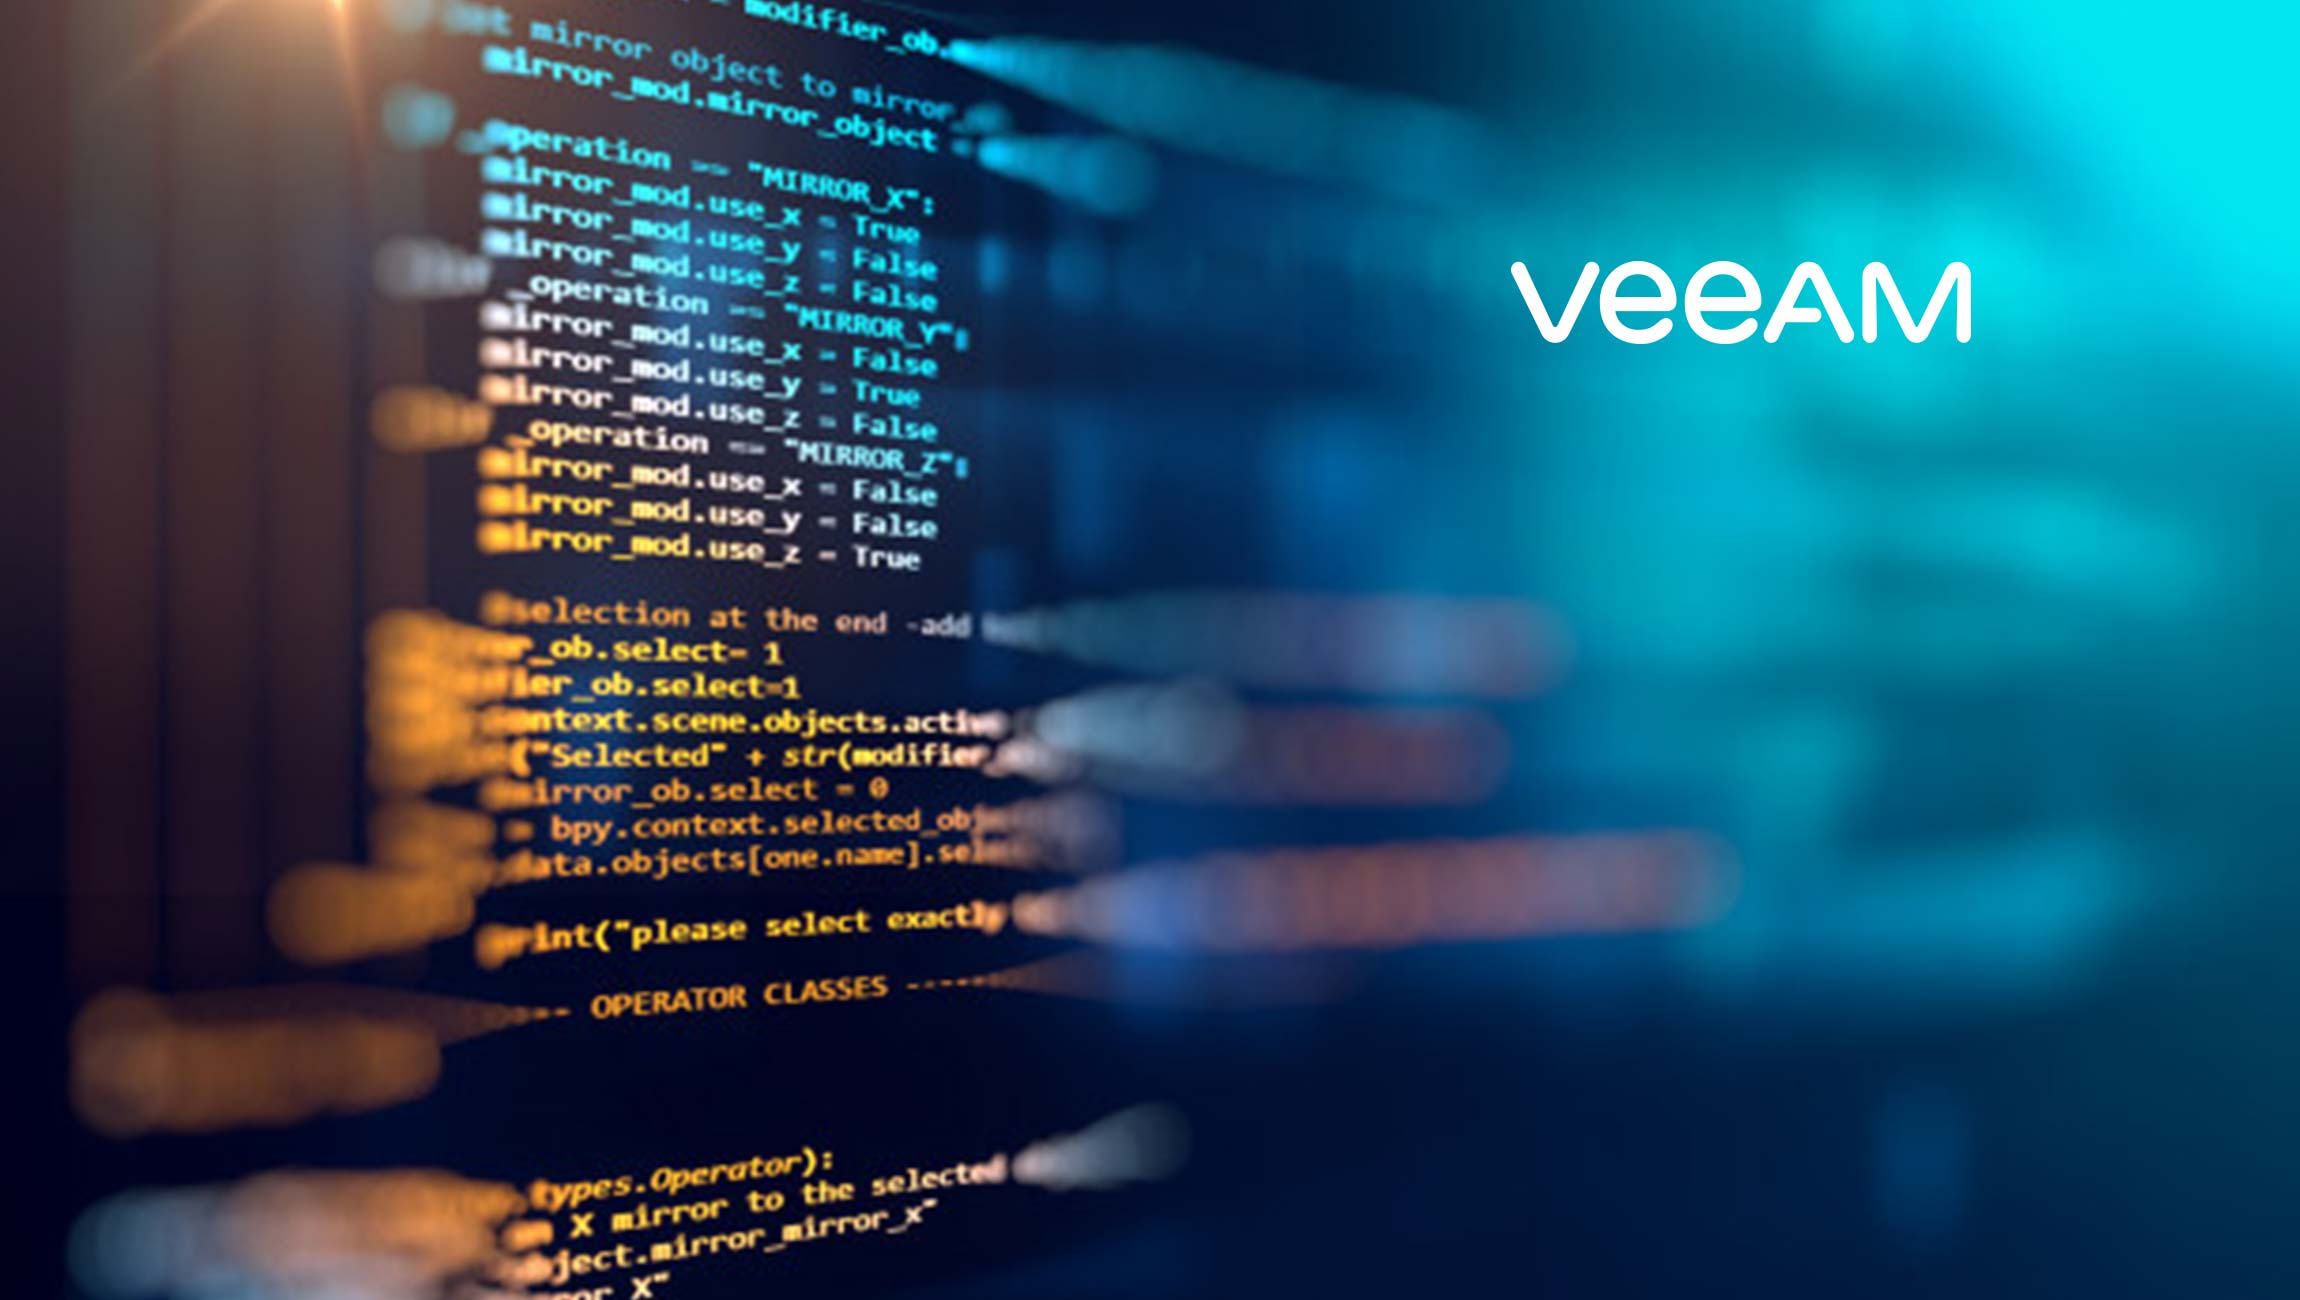 Veeam Recognized as a 2020 Gartner Peer Insights Customers' Choice for Data Center Backup and Recovery